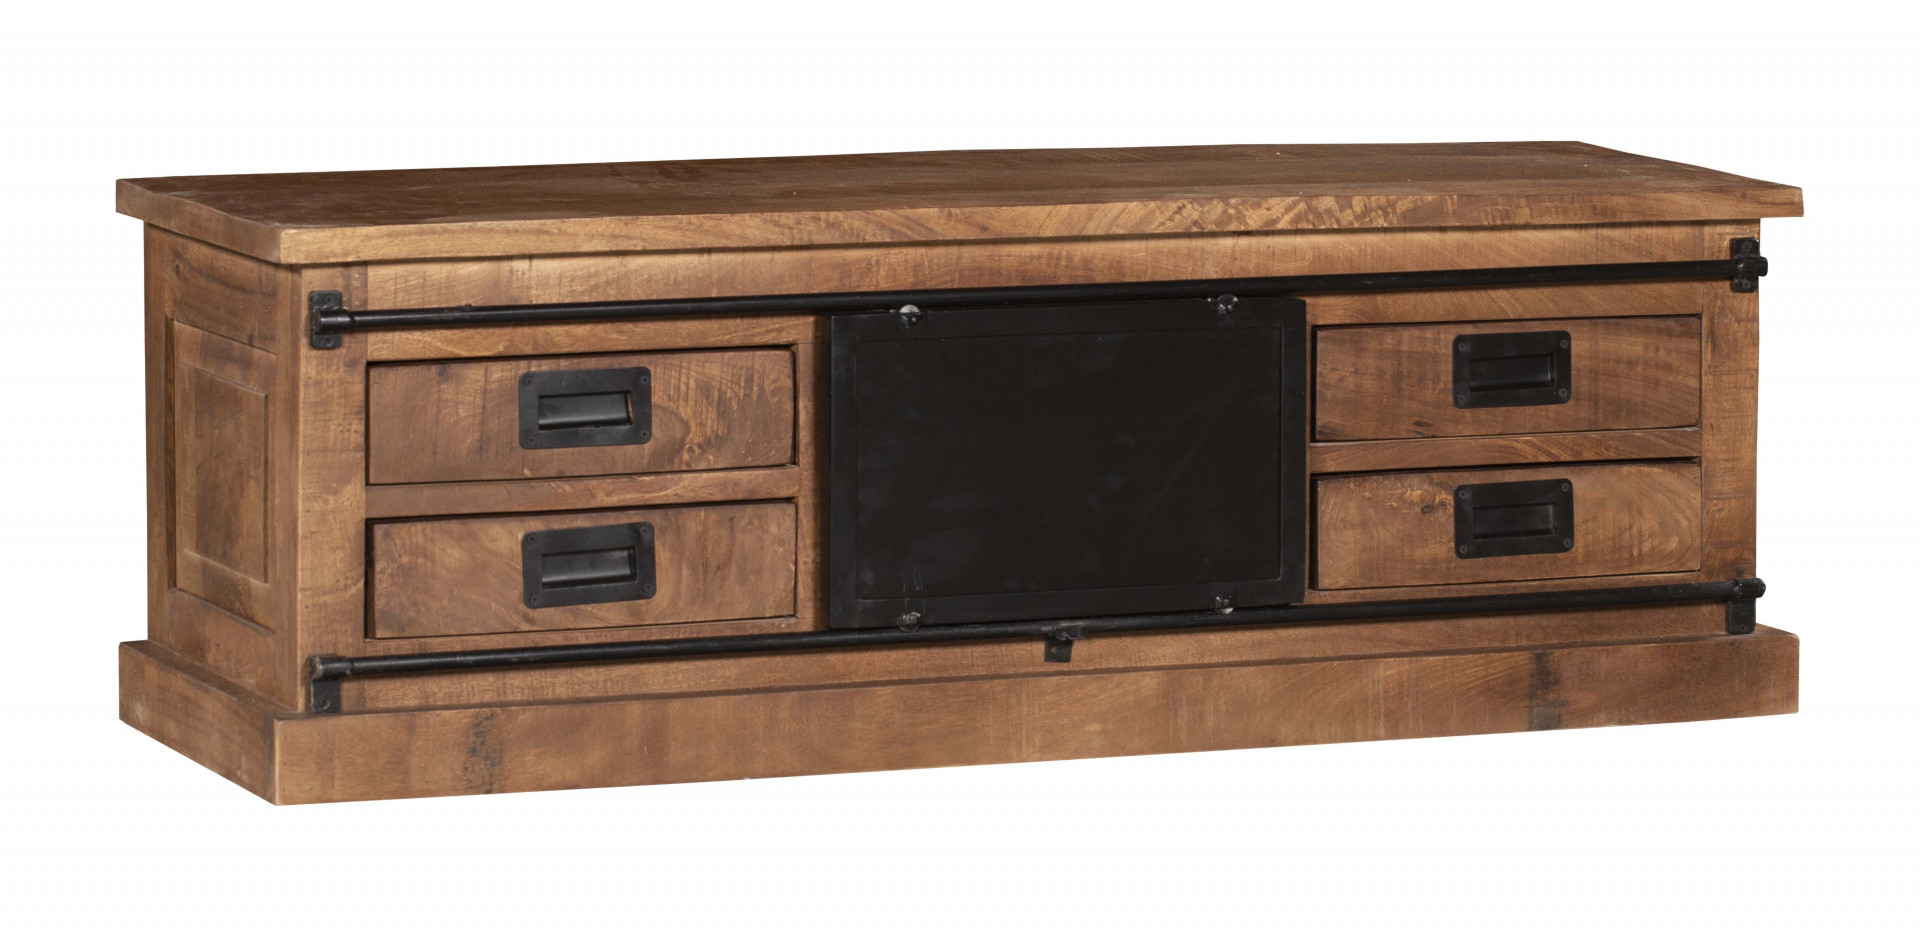 Tv dressoir Timor 150 breed